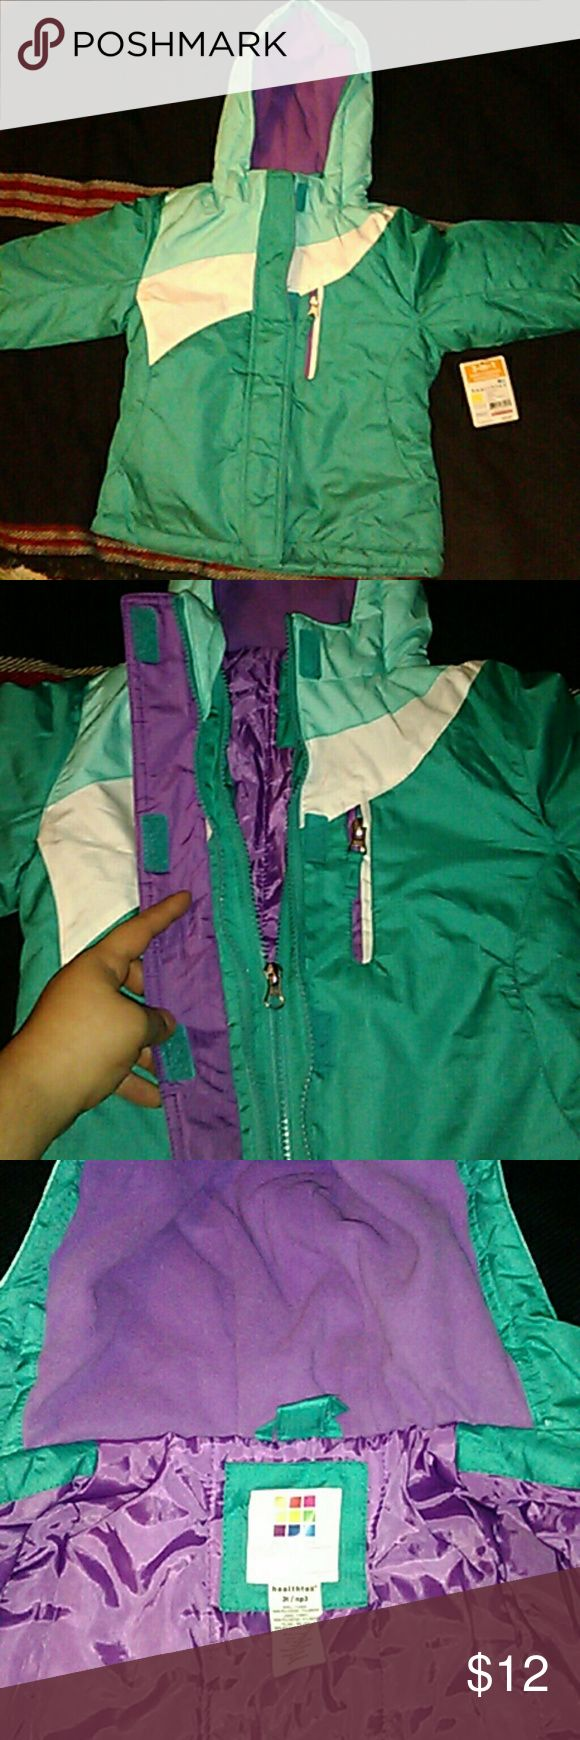 Girls Healthtex Water Resistant Jacket Brand new cute teal, white, and purple water resistant jacket. Has two front pockets and one pocket on chest. Adjustable hems on sleeve. This jacket had an inner jacket, but that part is gone. BUNDLE DISCOUNTS!! Healthtex Jackets & Coats